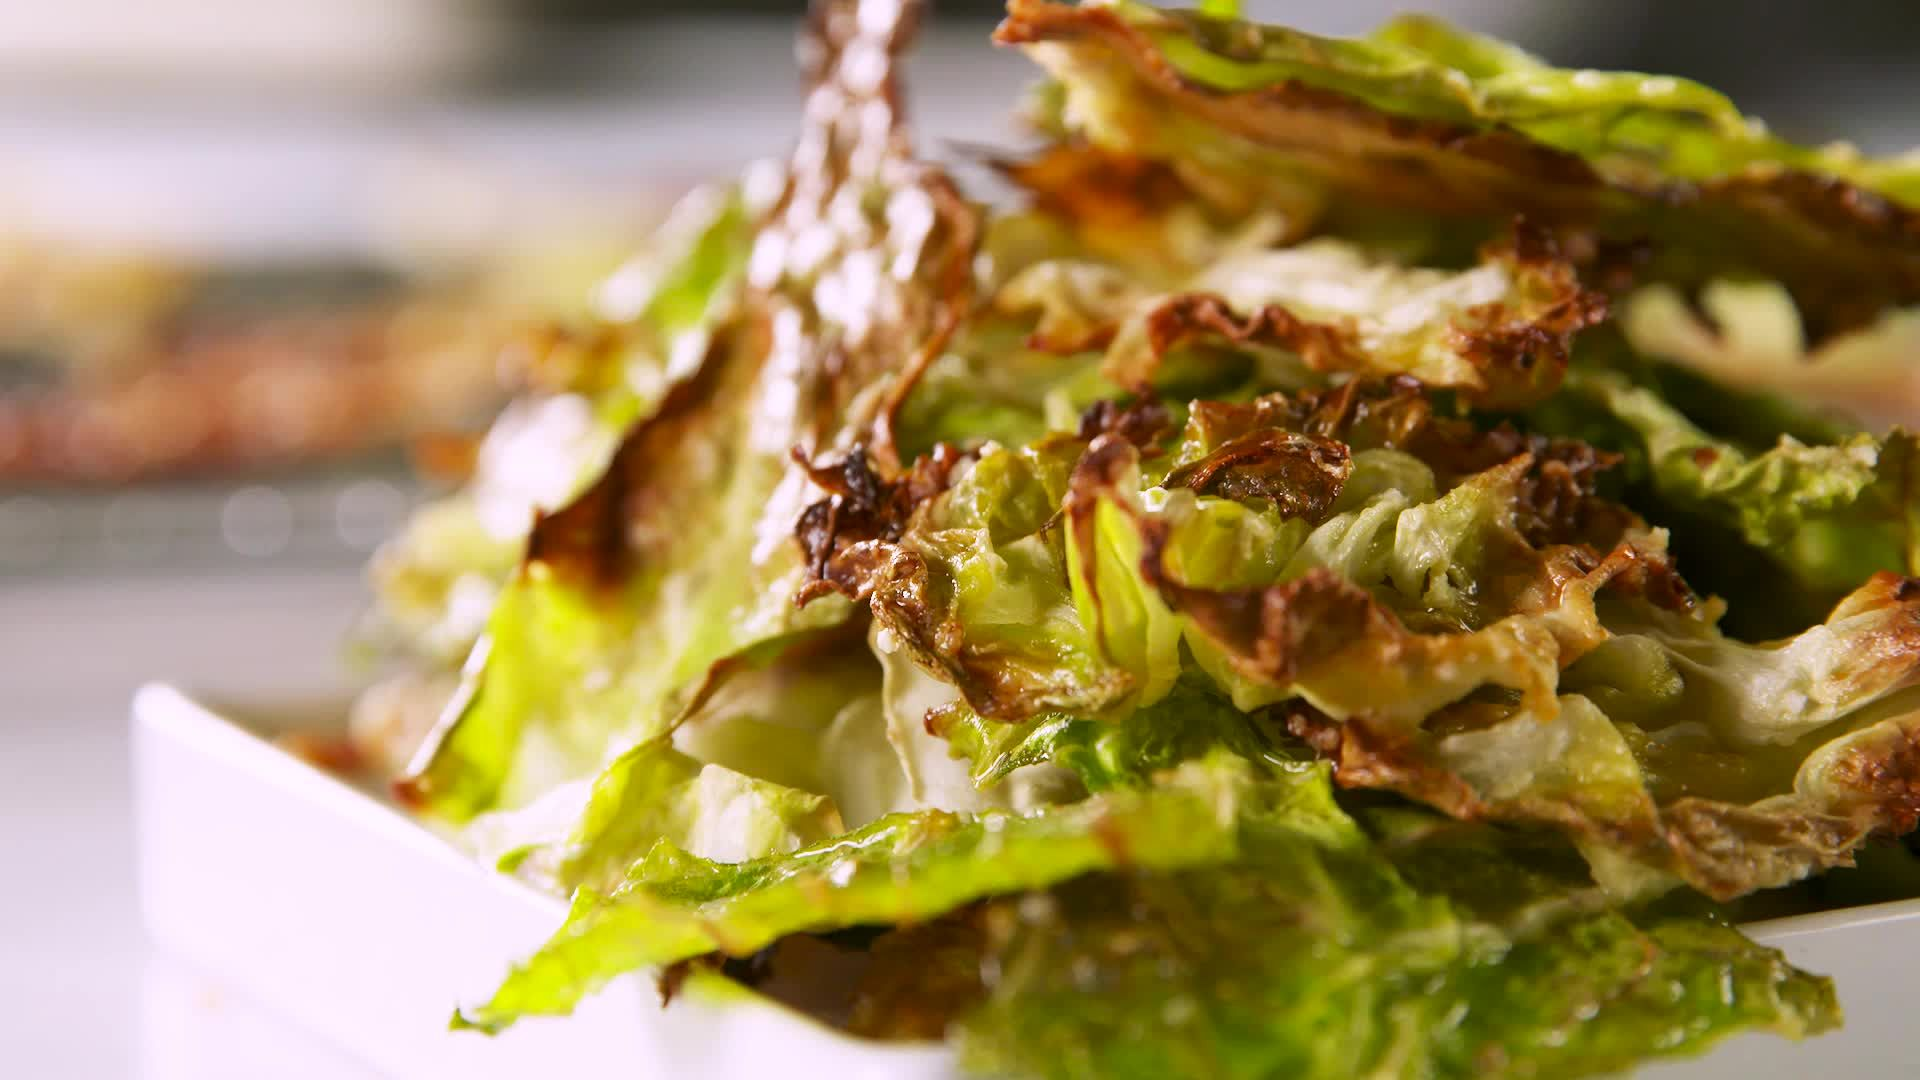 How To Make Super Crunchy Cabbage Chips